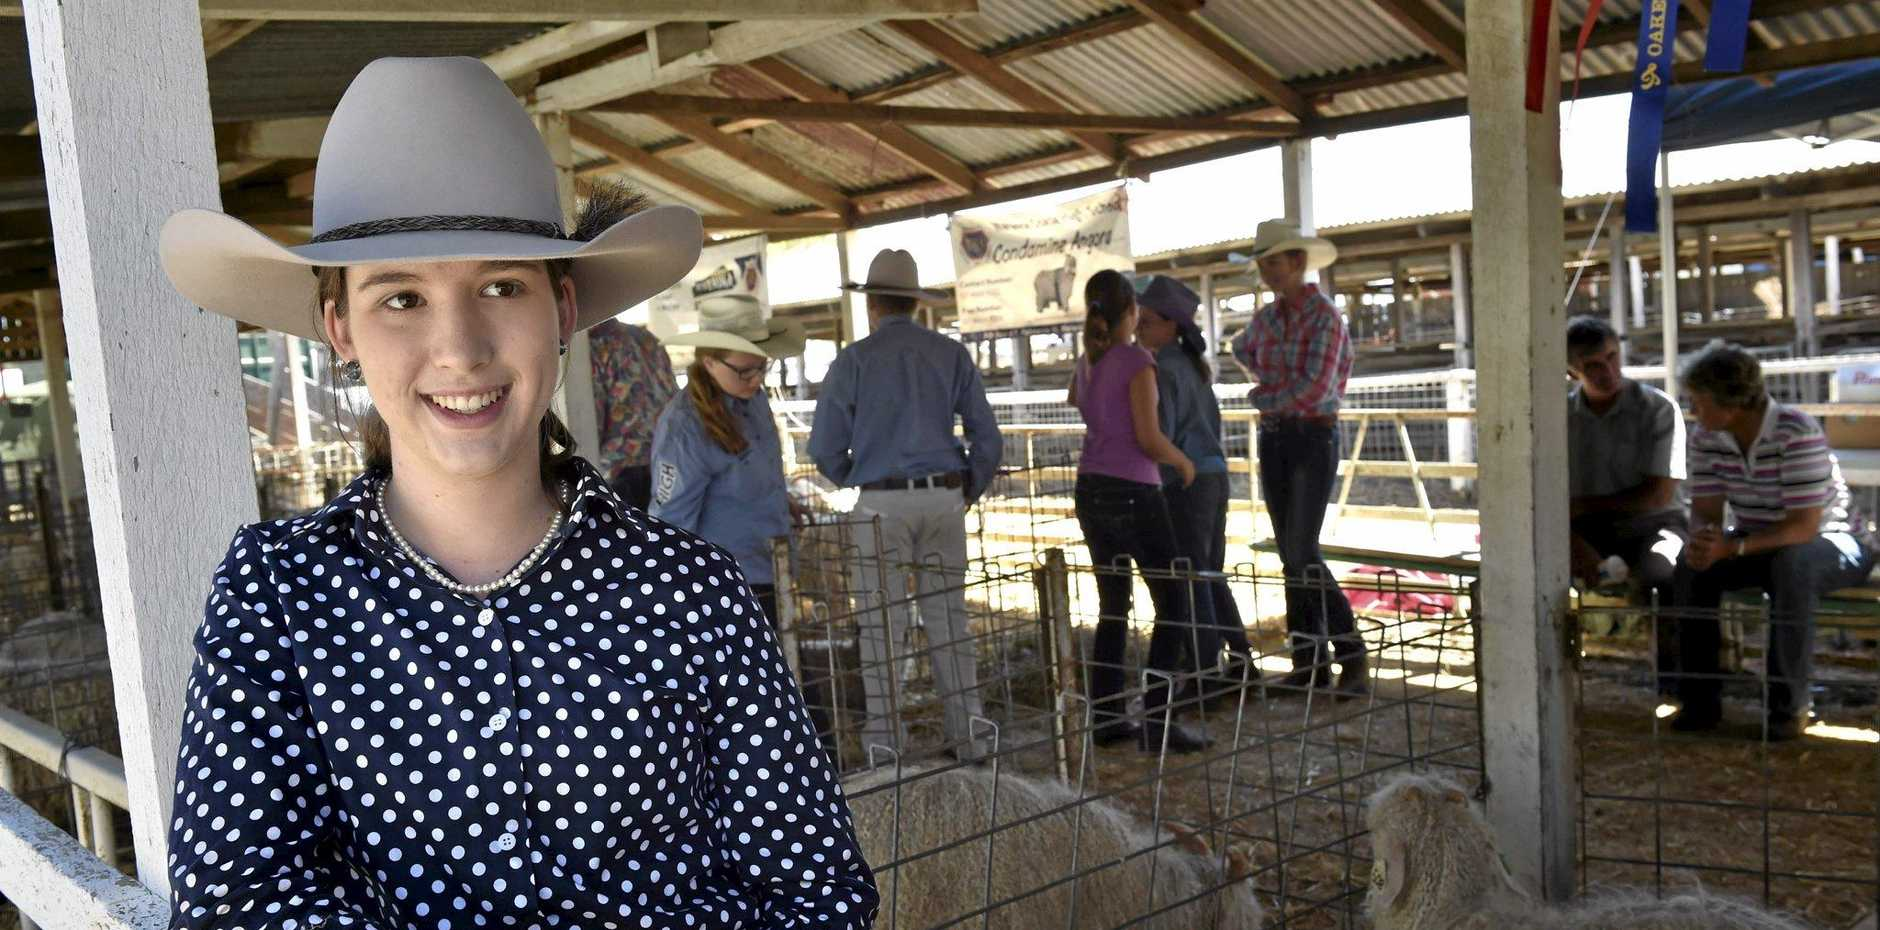 IN THE KNOW: Oakey's Sarah Ray works as a judge of angora goats during show season.